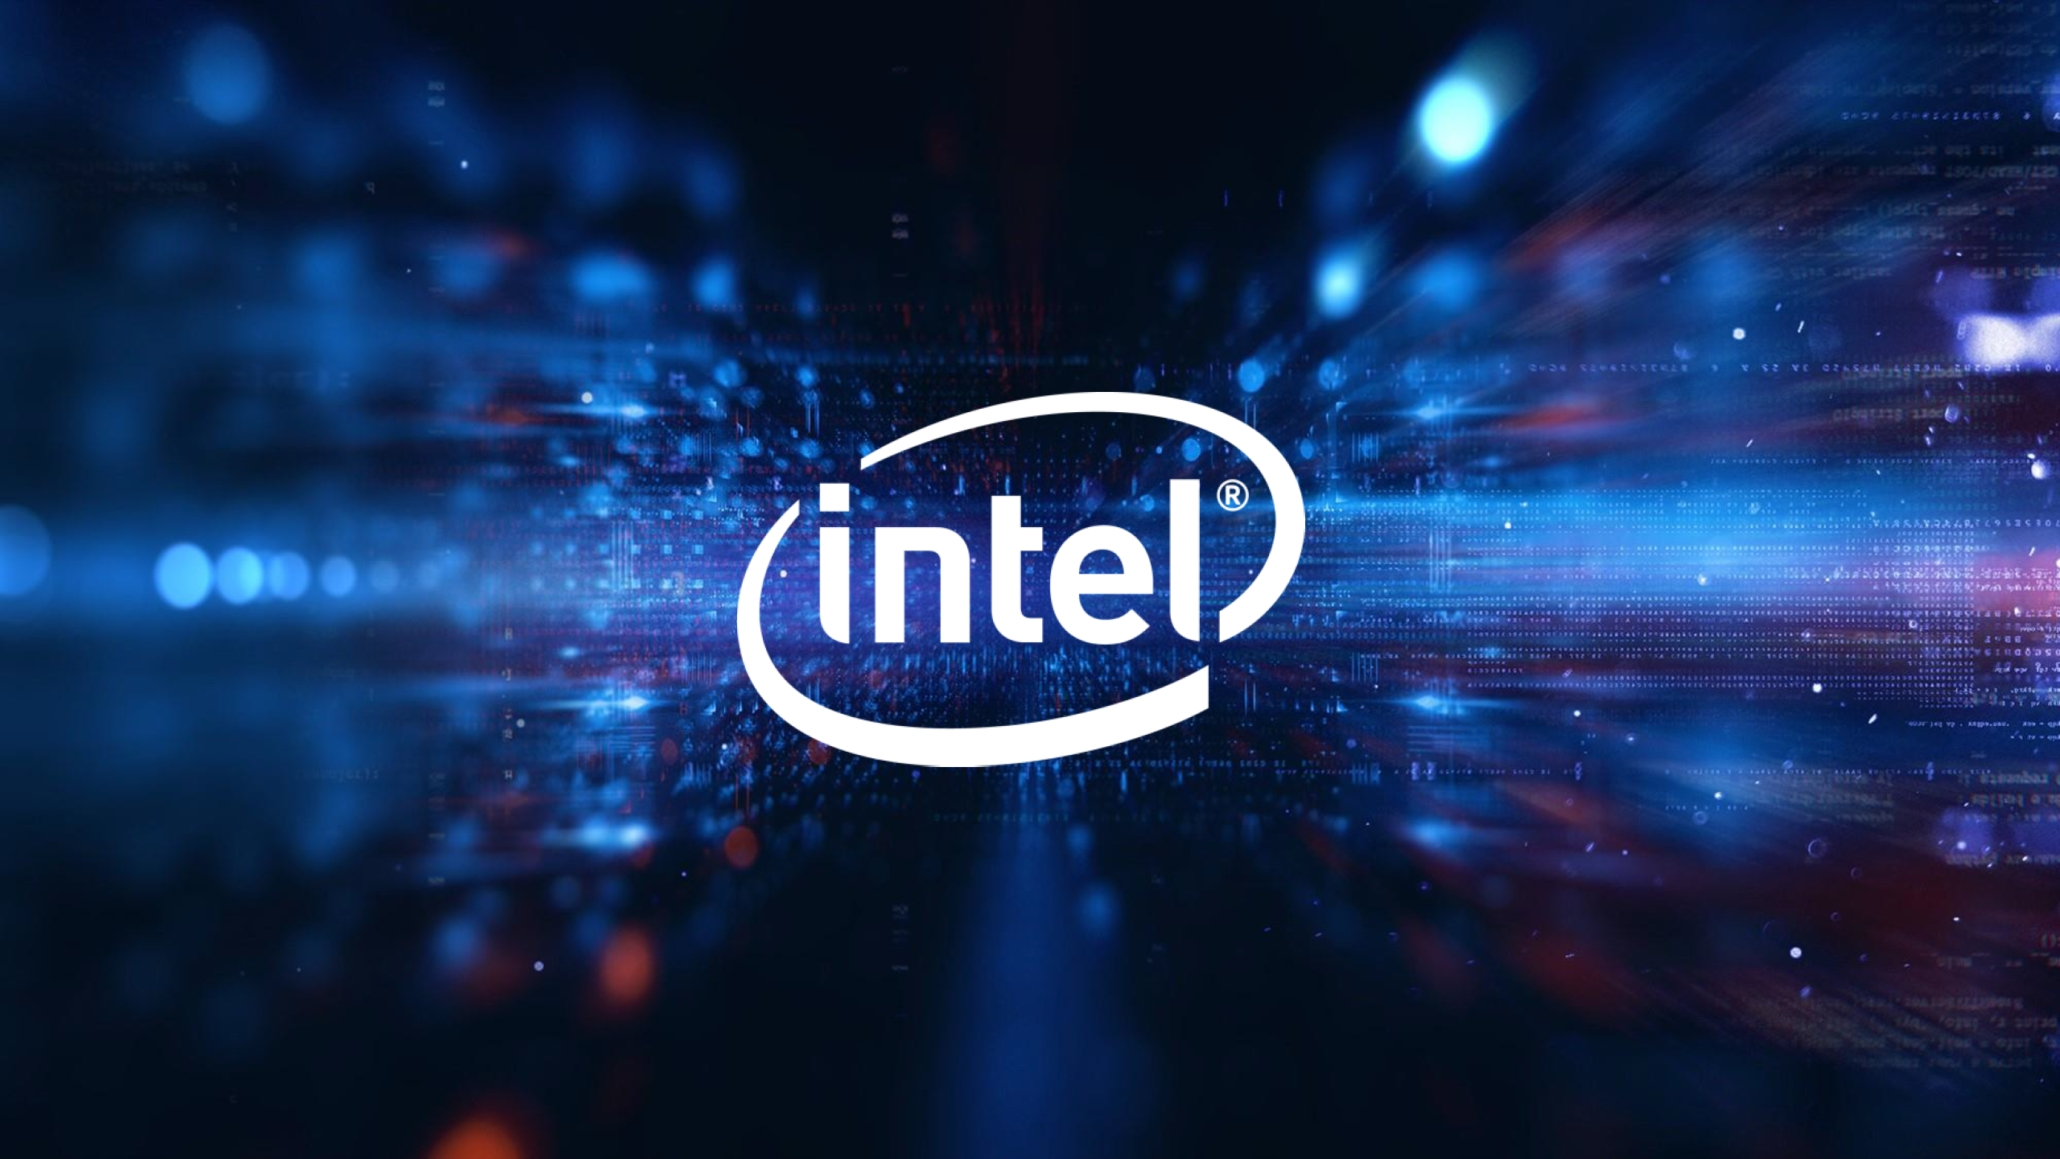 Windows 10 e Intel logo